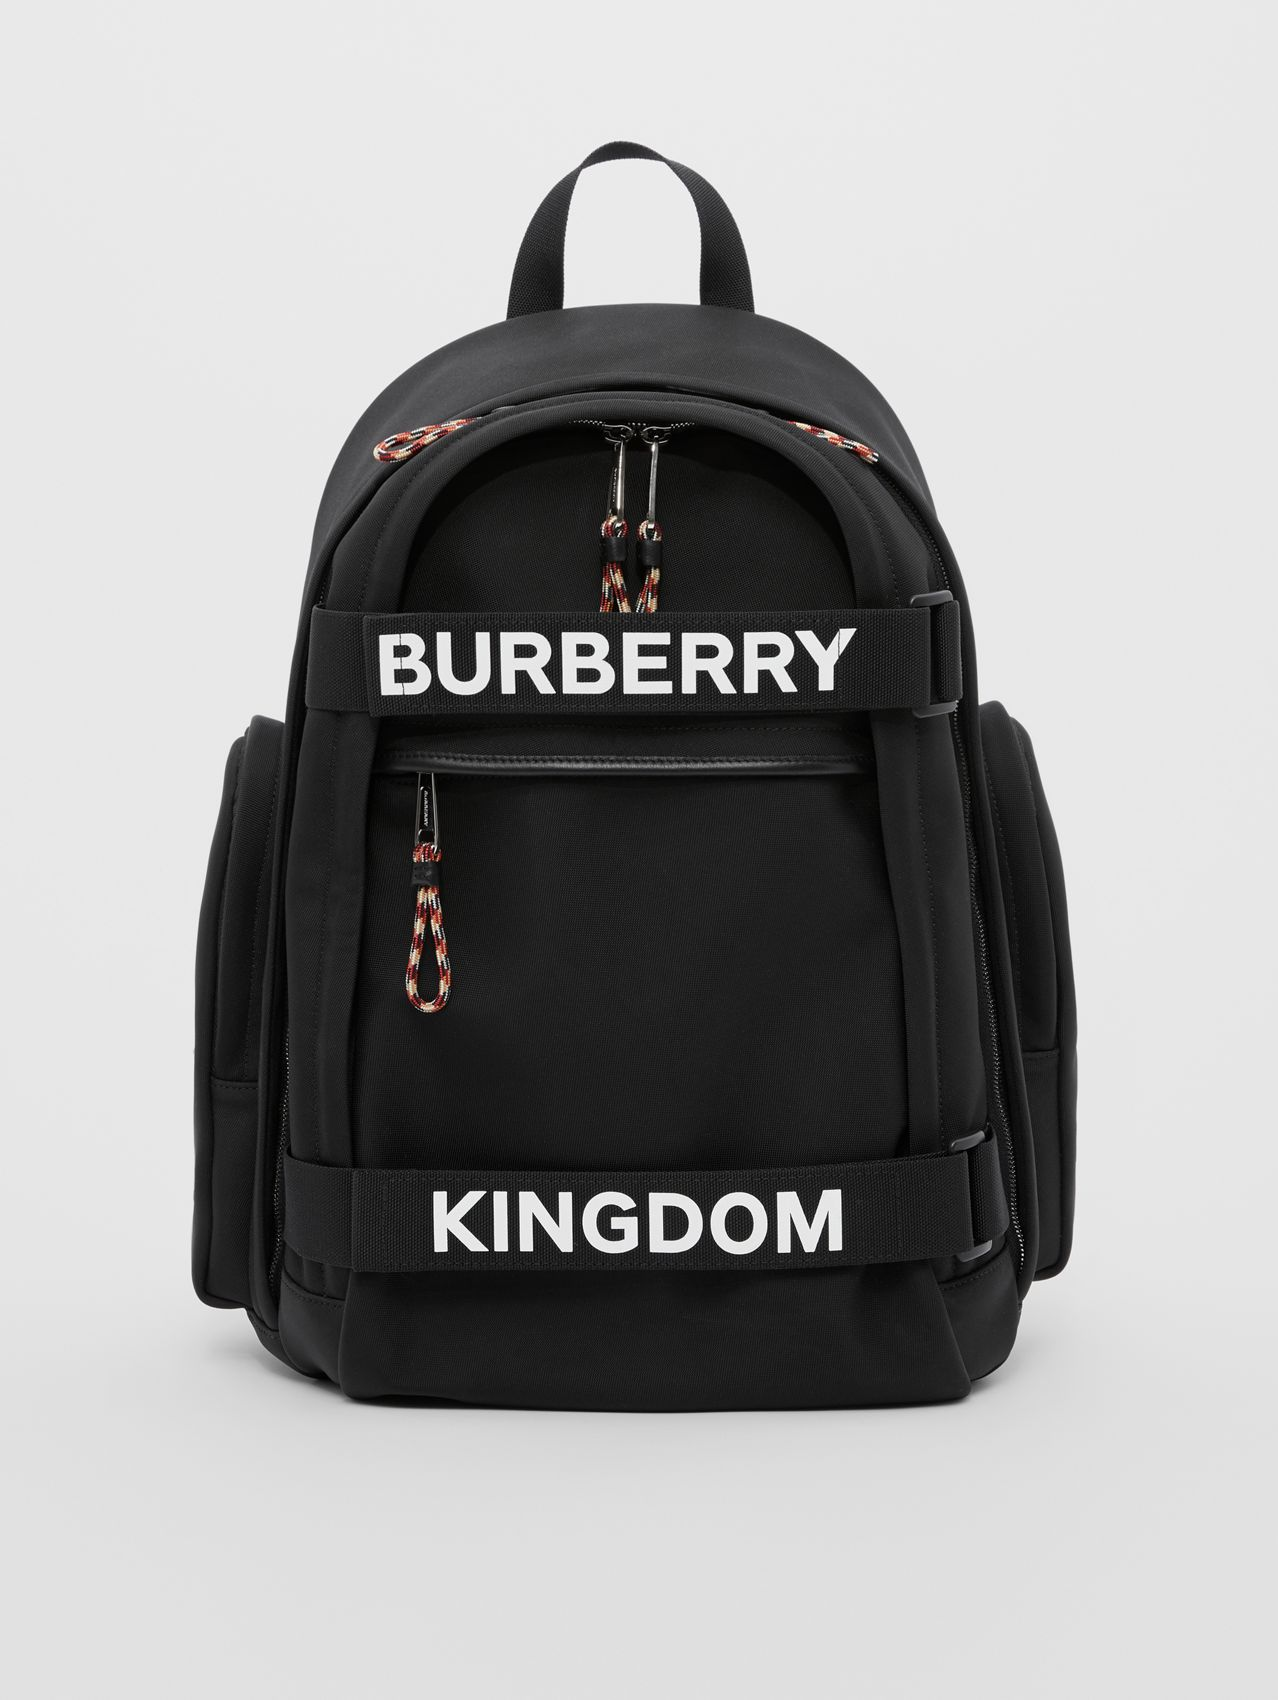 Mochila Nevis com logotipo e estampa Kingdom - Grande in Preto/branco